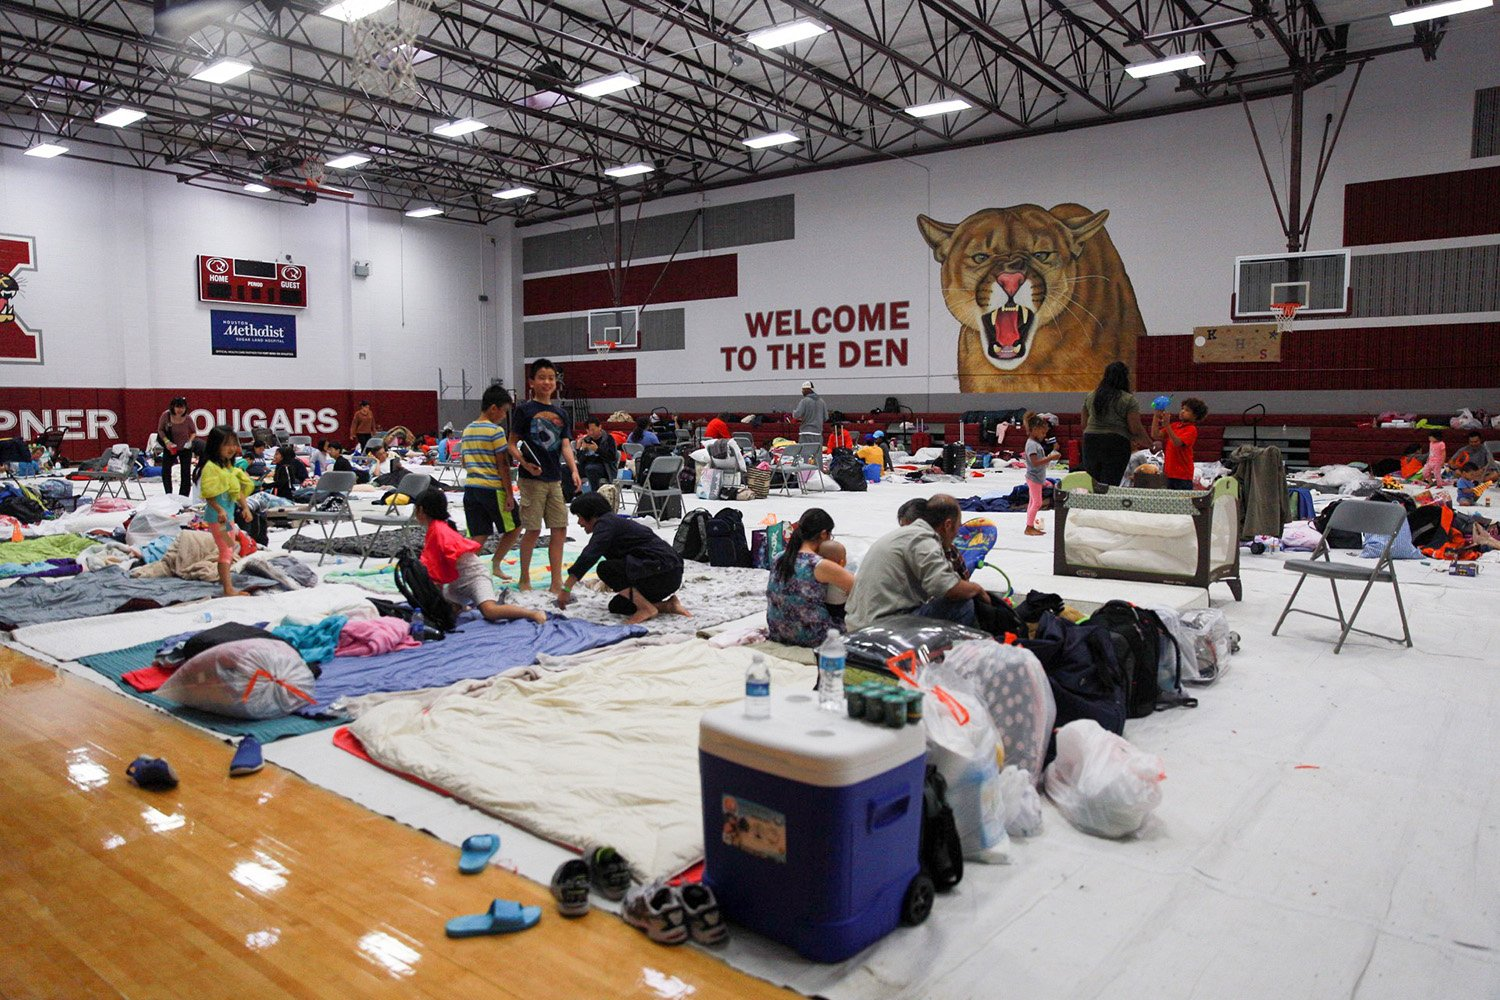 The gym at Kempner High School in Sugarland in Fort Bend Co. southwest of Houston has been converted to a shelter.